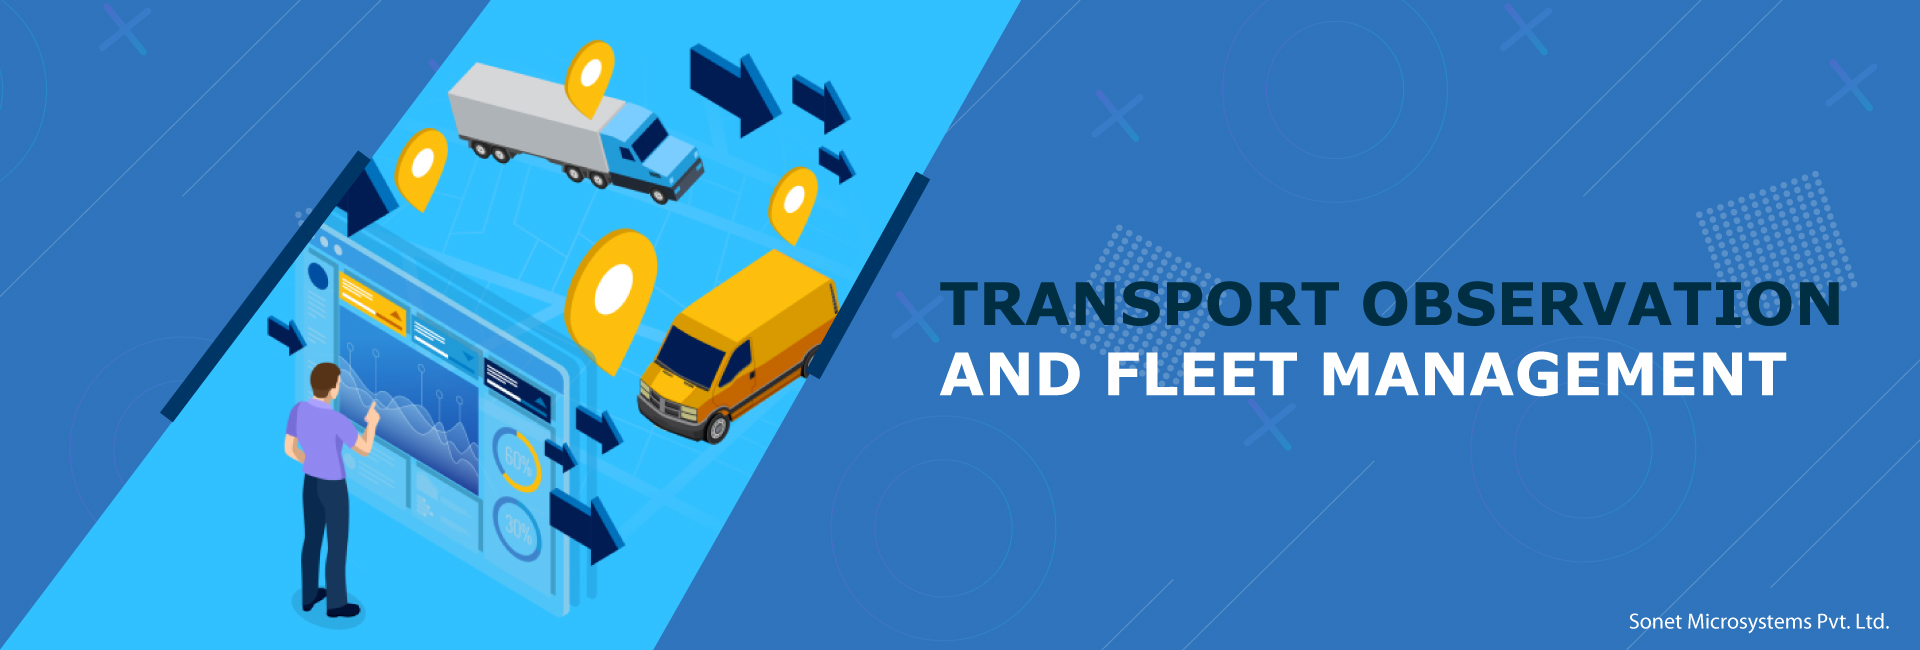 fleet management software, fleet management system